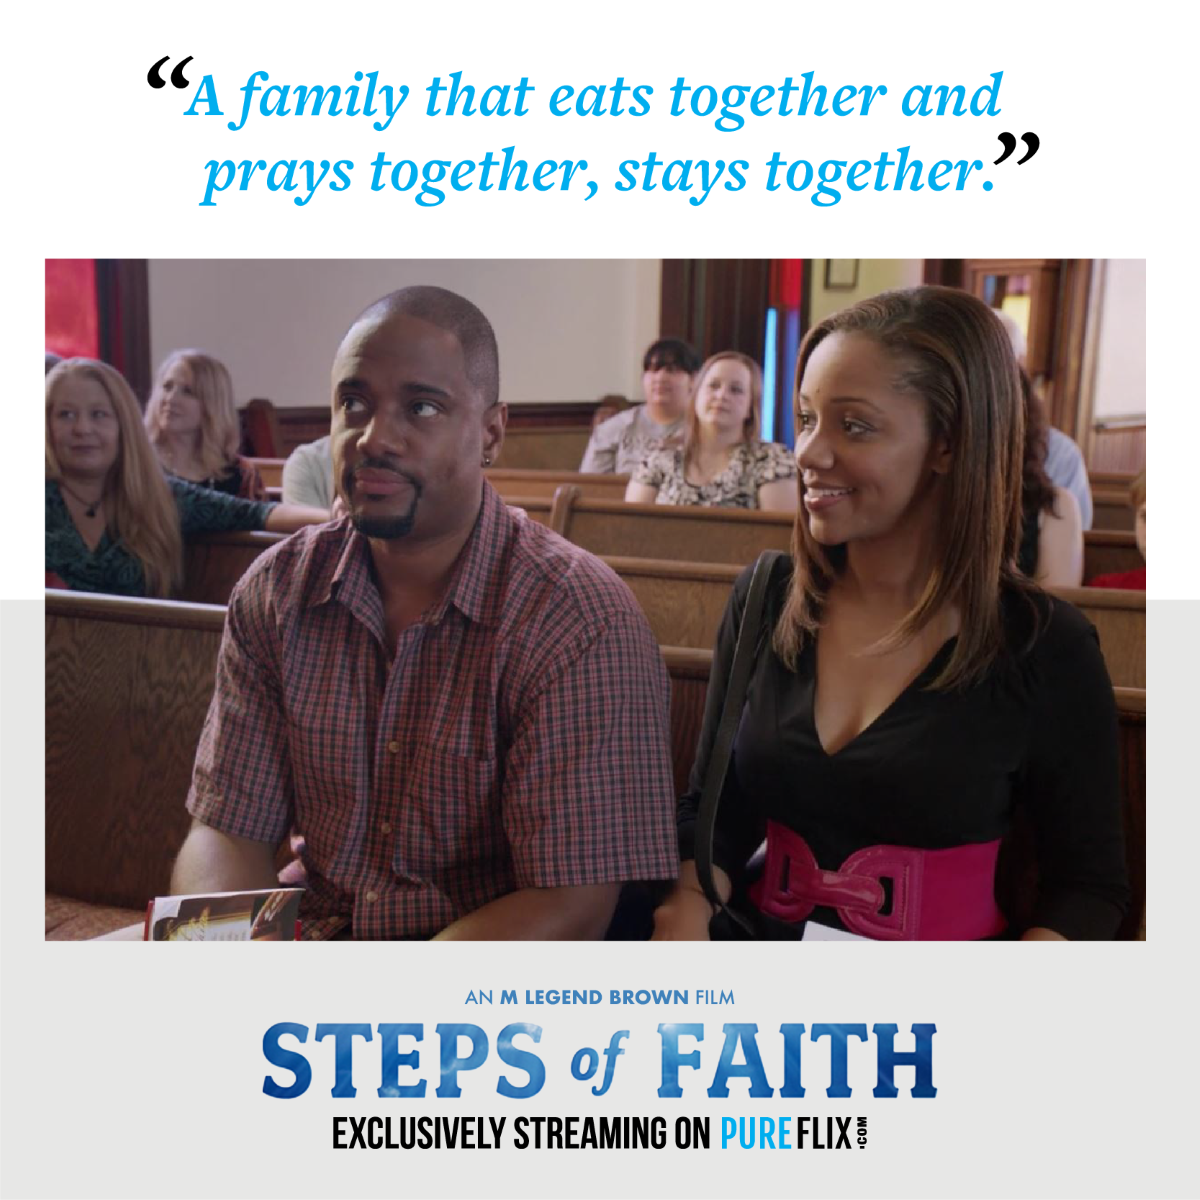 Coming Soon to Pure Flix Steps of Faith! Sign up for your